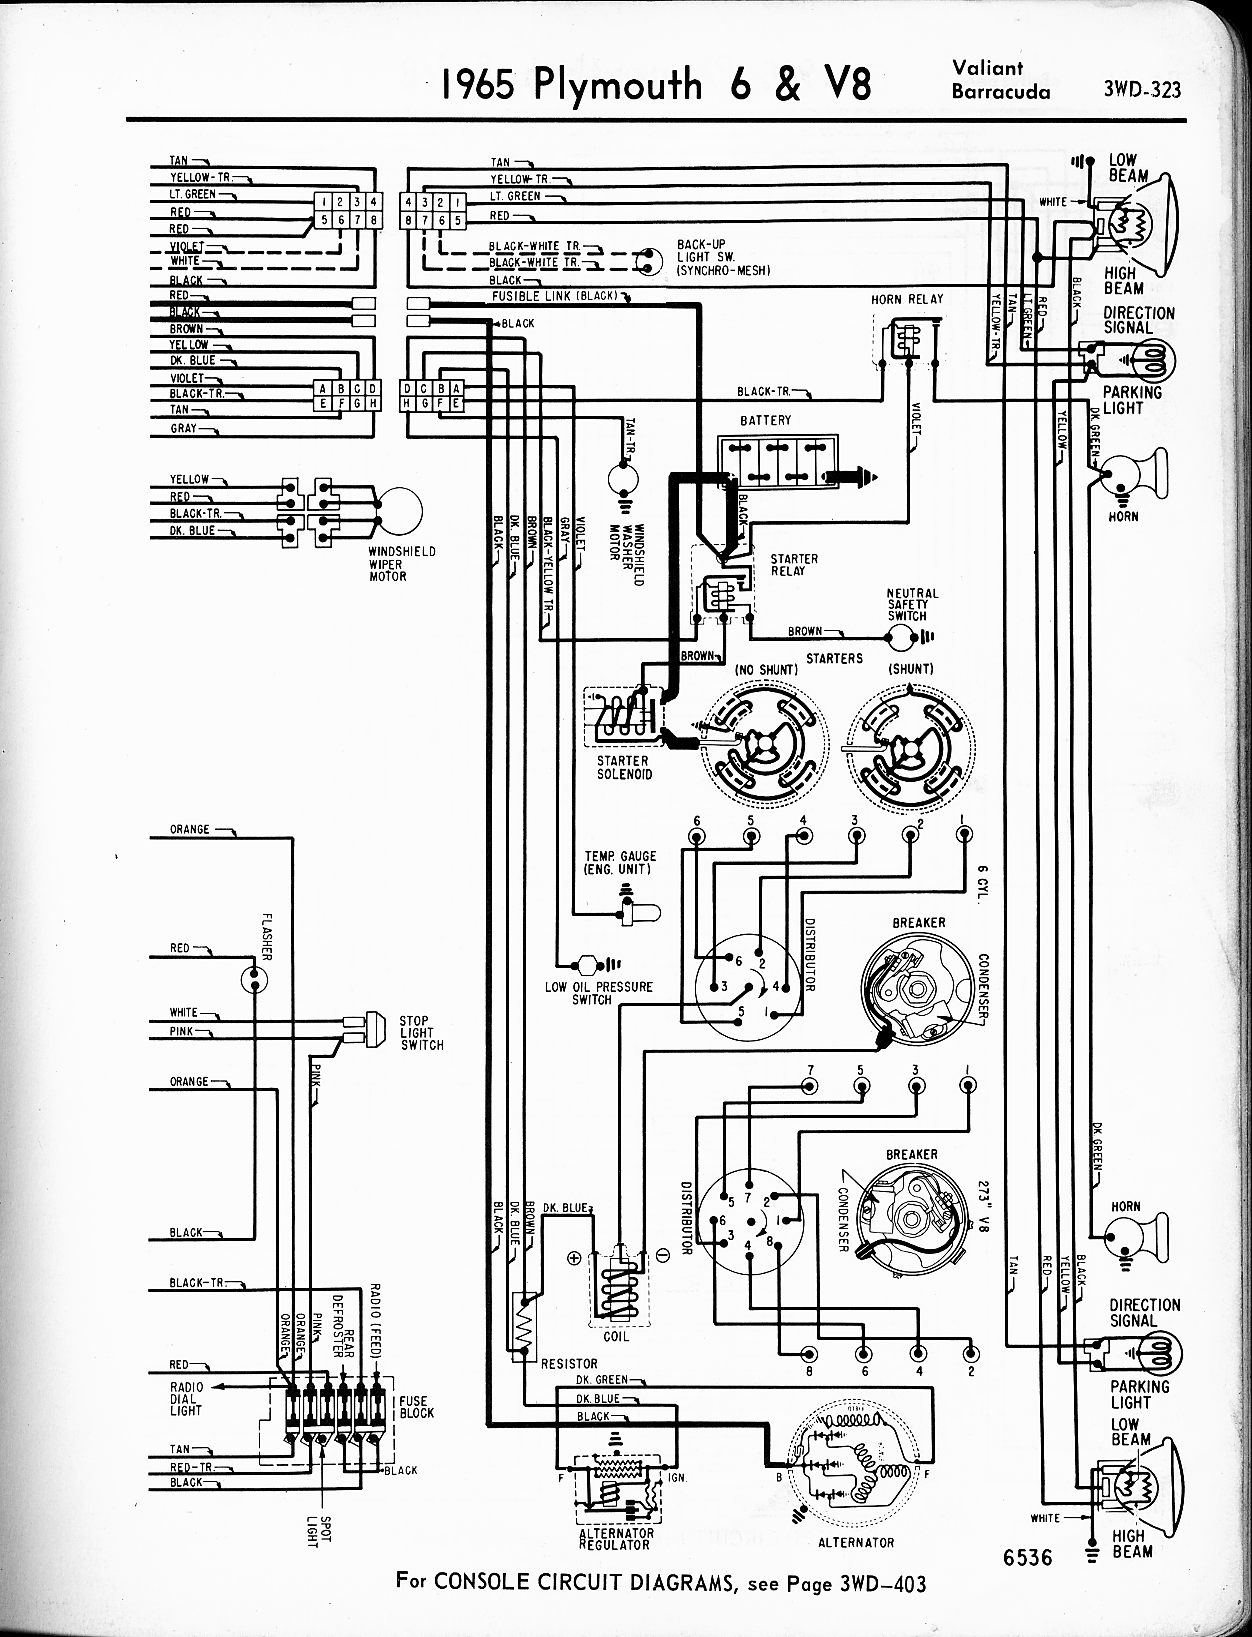 Wiring diagram for 1965 plymouth valiant wiring diagram rh komagoma co 1970 plymouth cuda wiring diagram 1970 plymouth cuda wiring harness